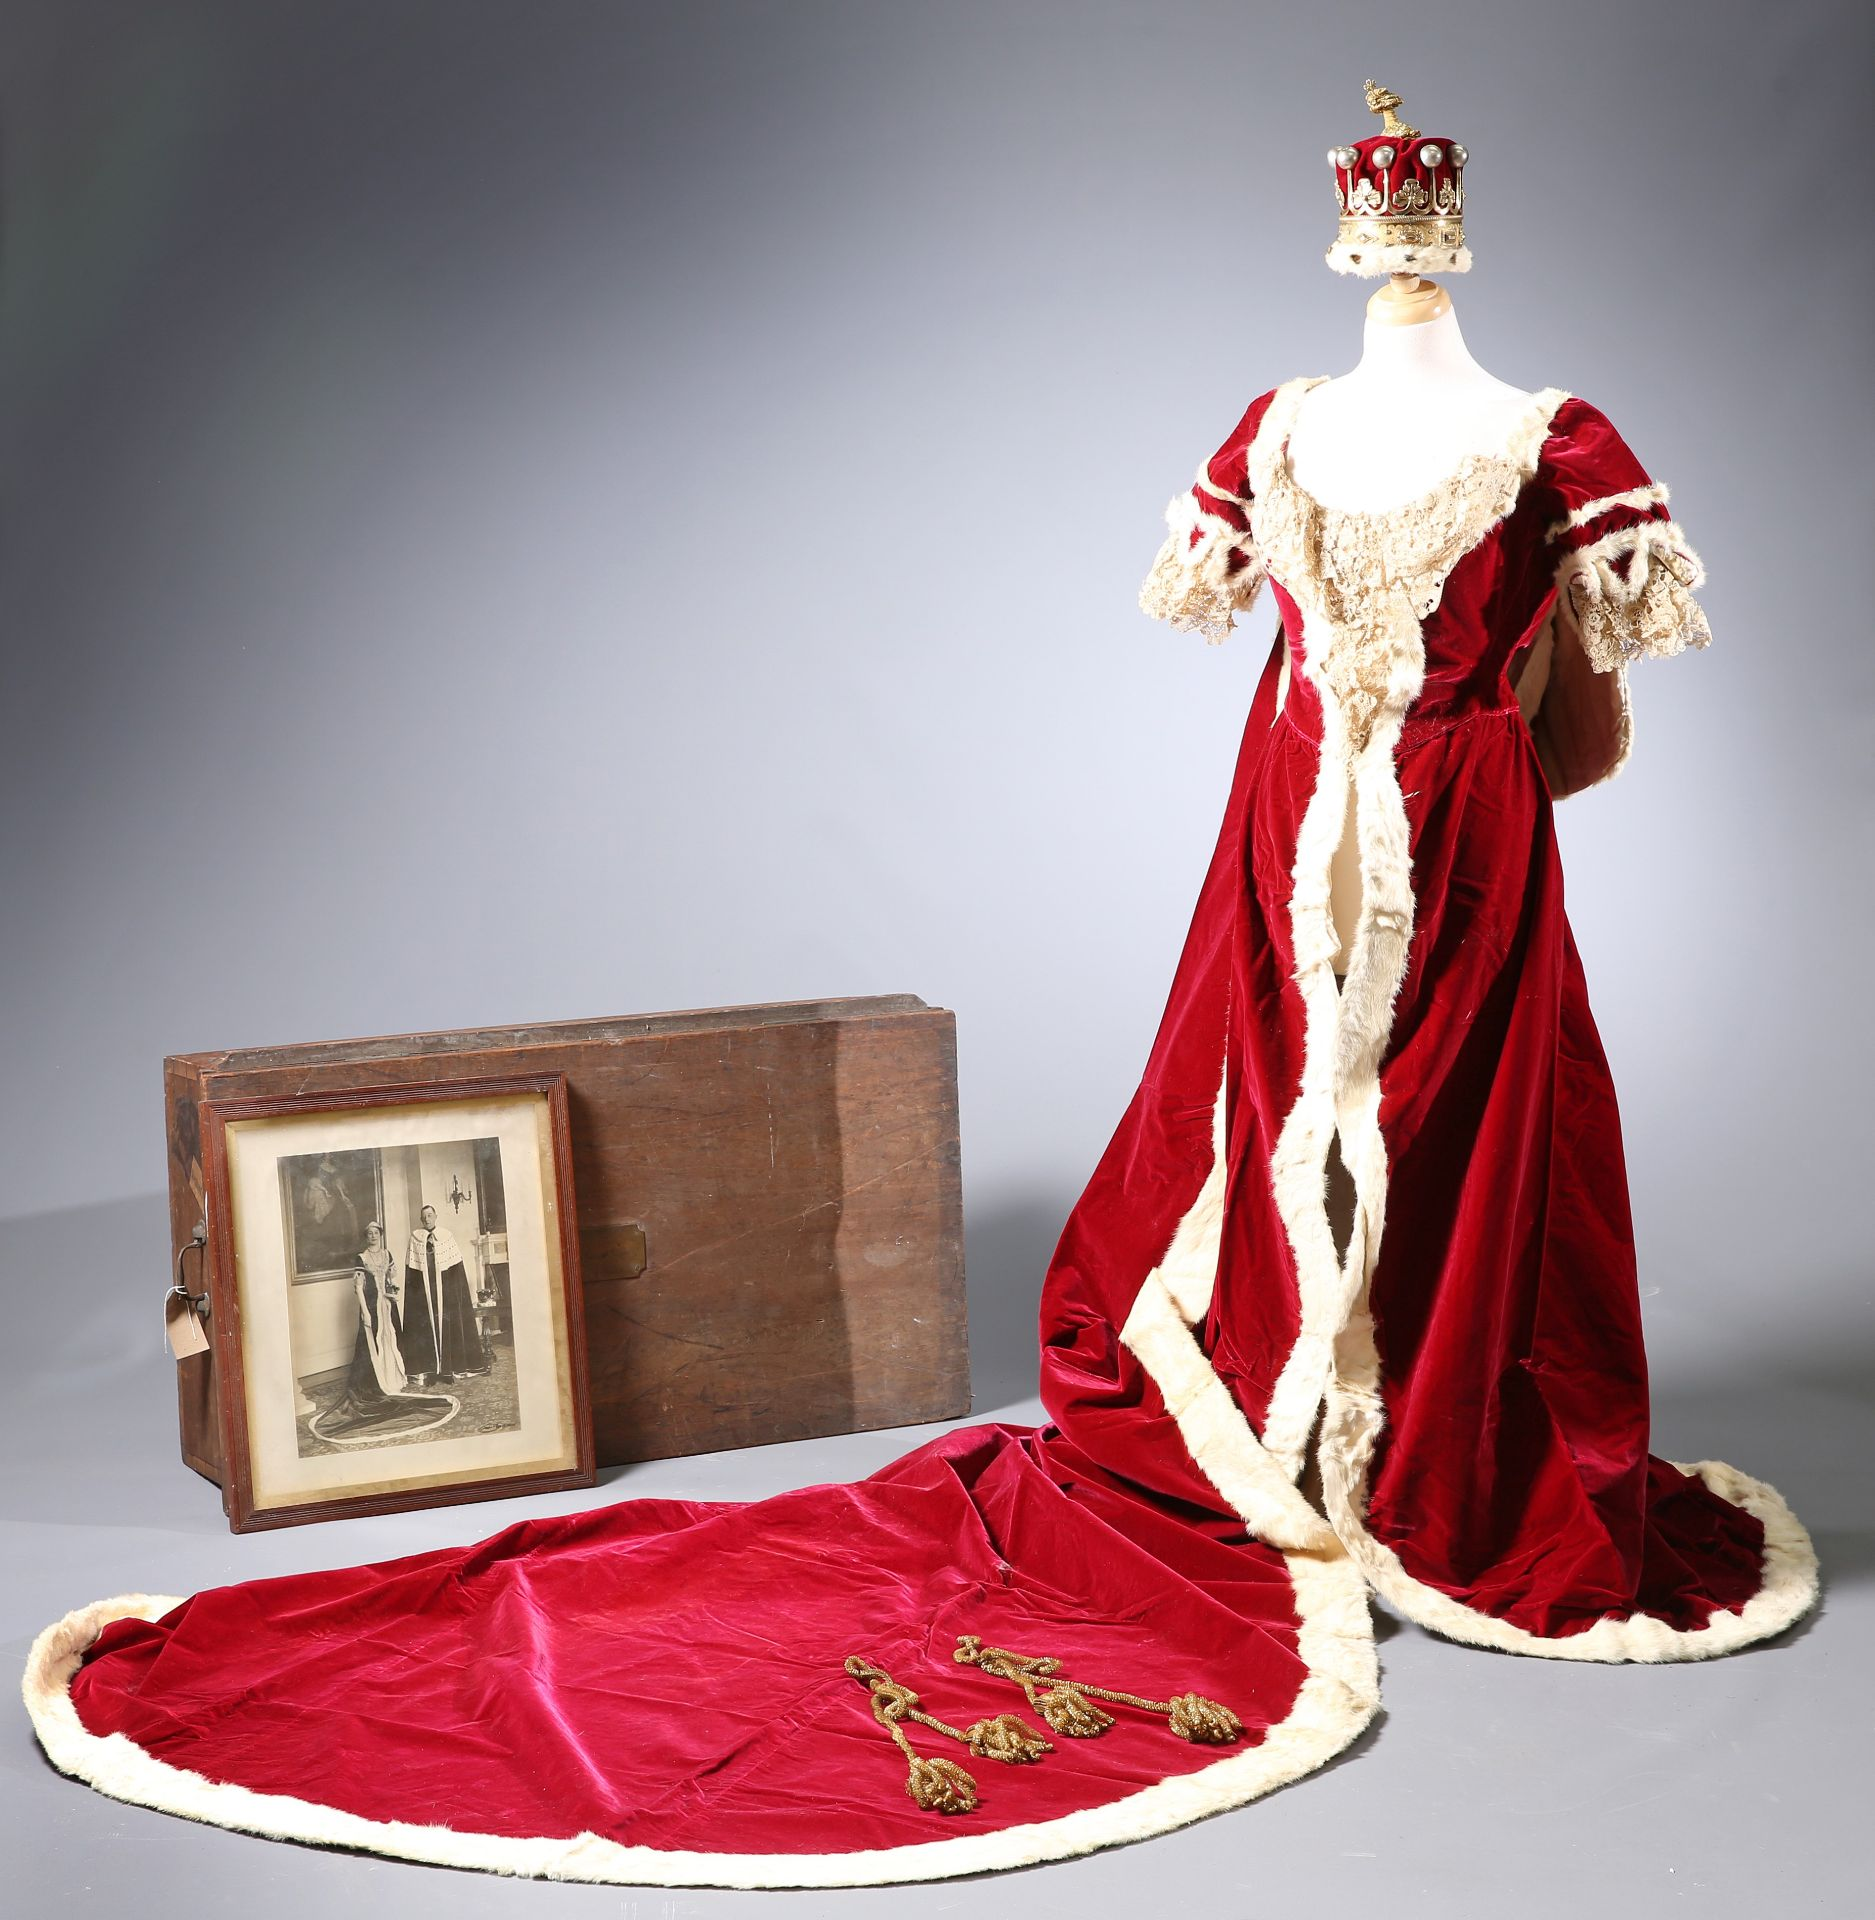 ~ THE CORONATION ROBES OF THE COUNTESS OF GUILFORD by Ede, Son & Ravenscroft, crimson velvet trimmed